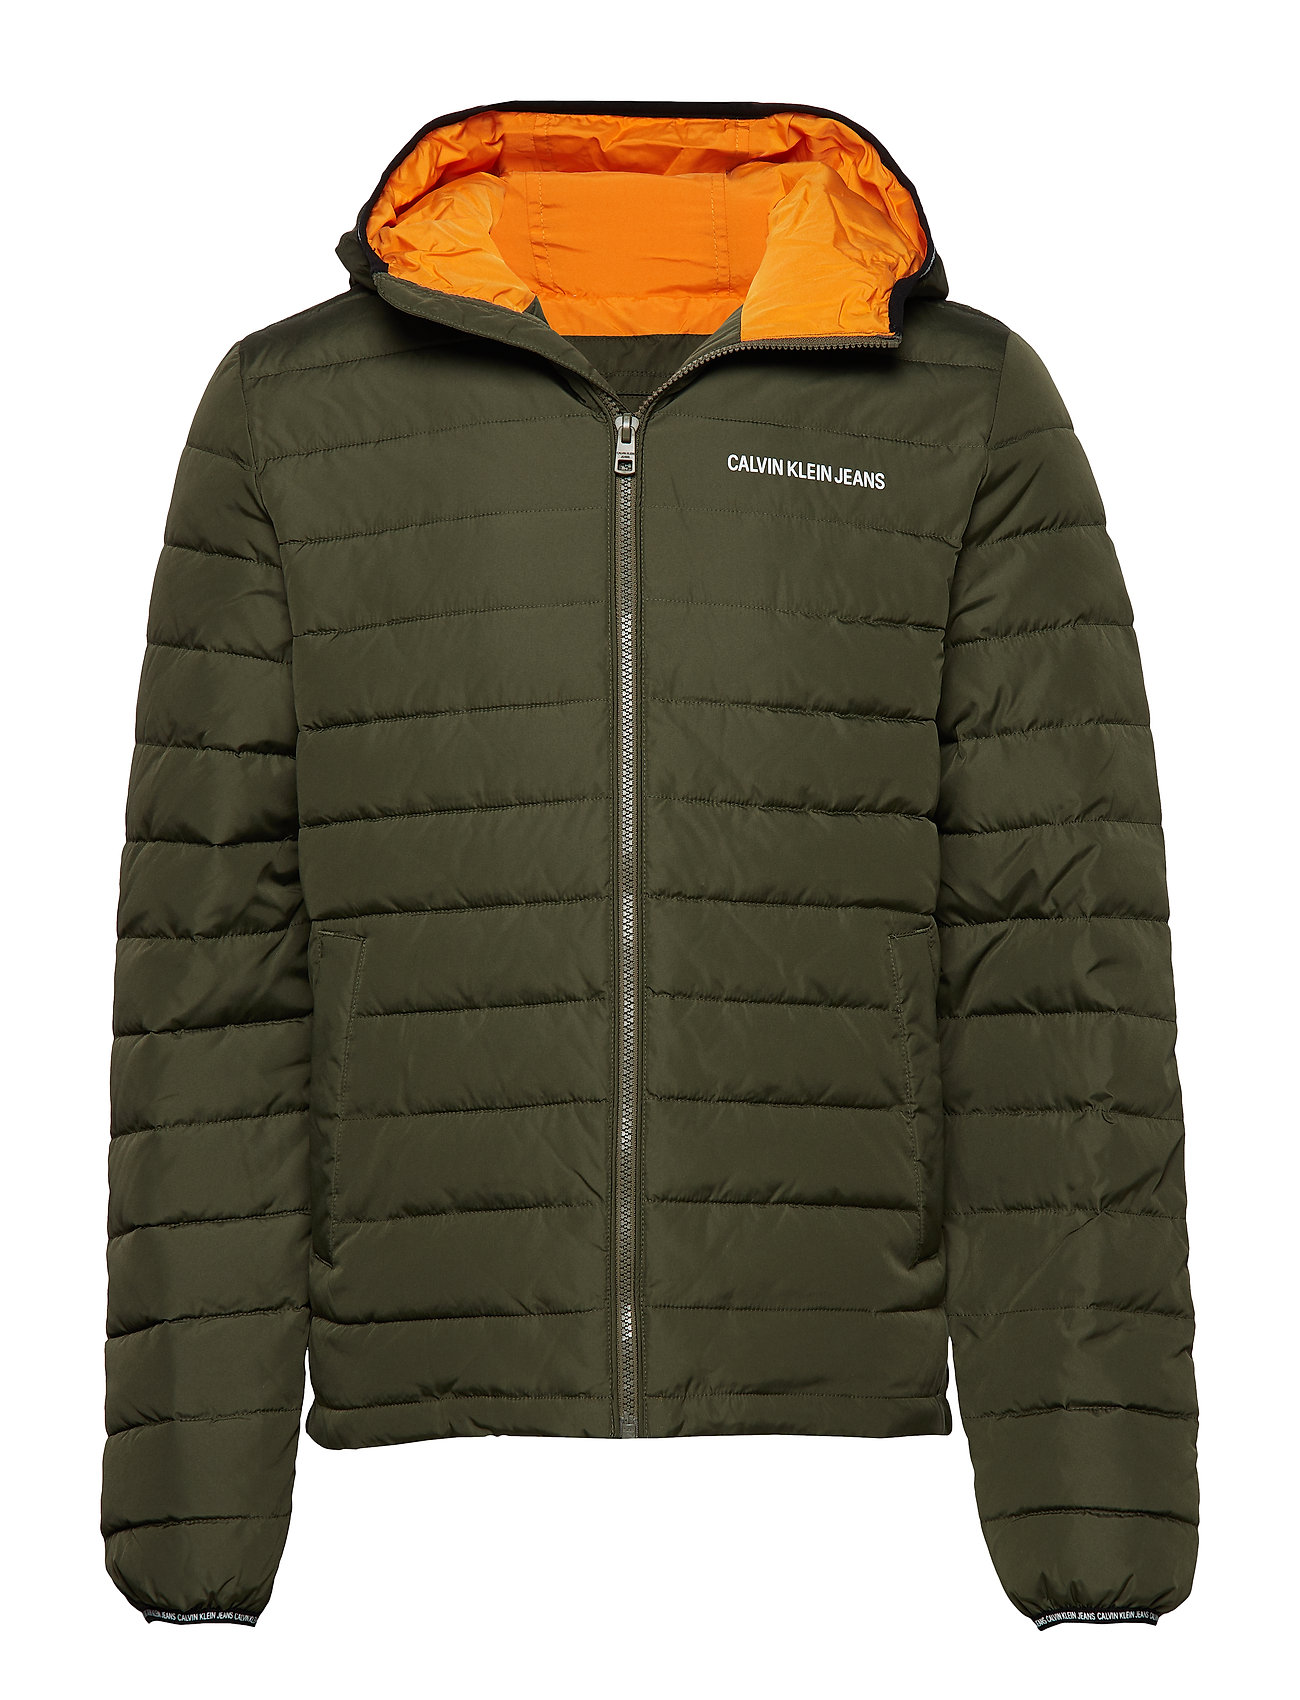 Calvin Klein Jeans PADDED HOODED JACKET - GRAPE LEAF/ORANGE